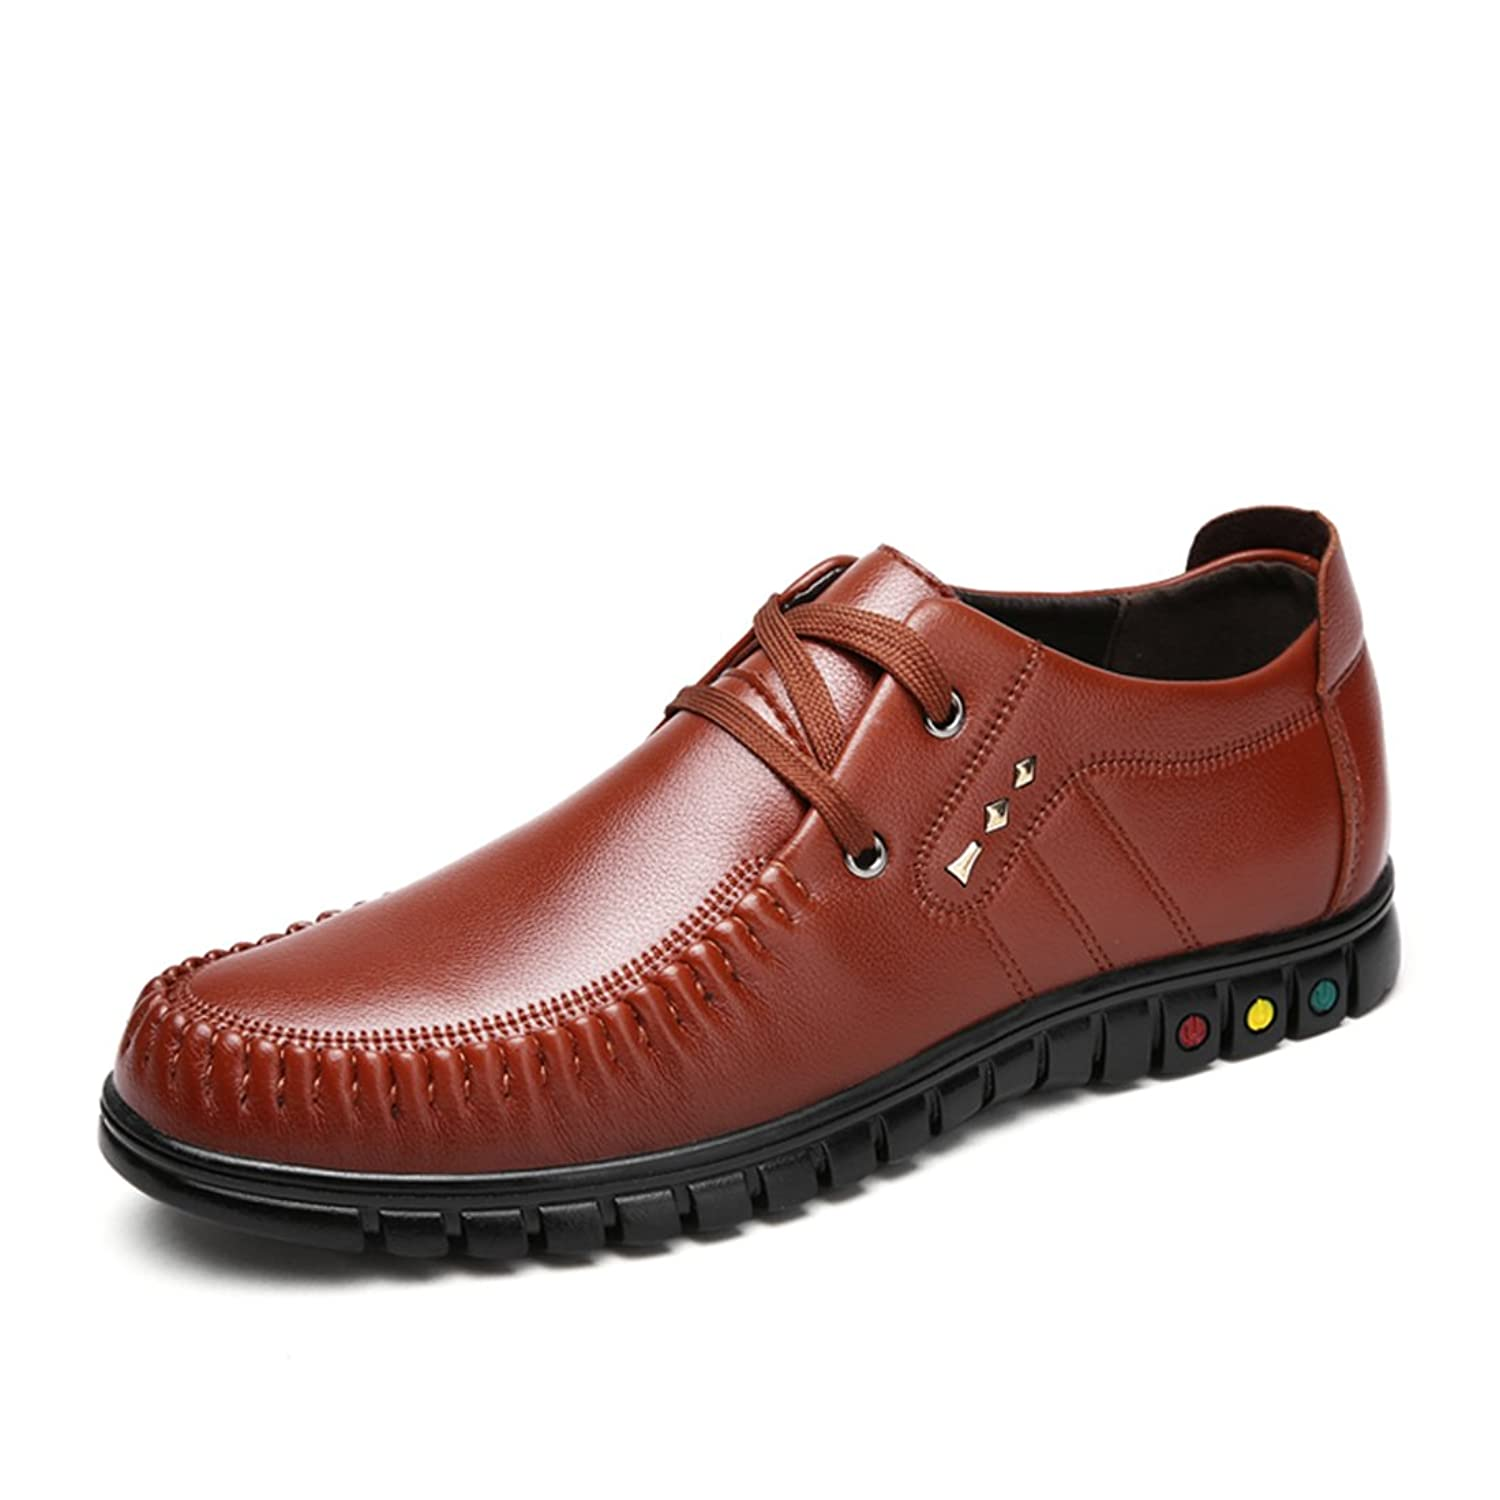 XIAFEN Men's New Style Lace-Up Comfortable Nice Look Fashion Dress Oxfords Shoes